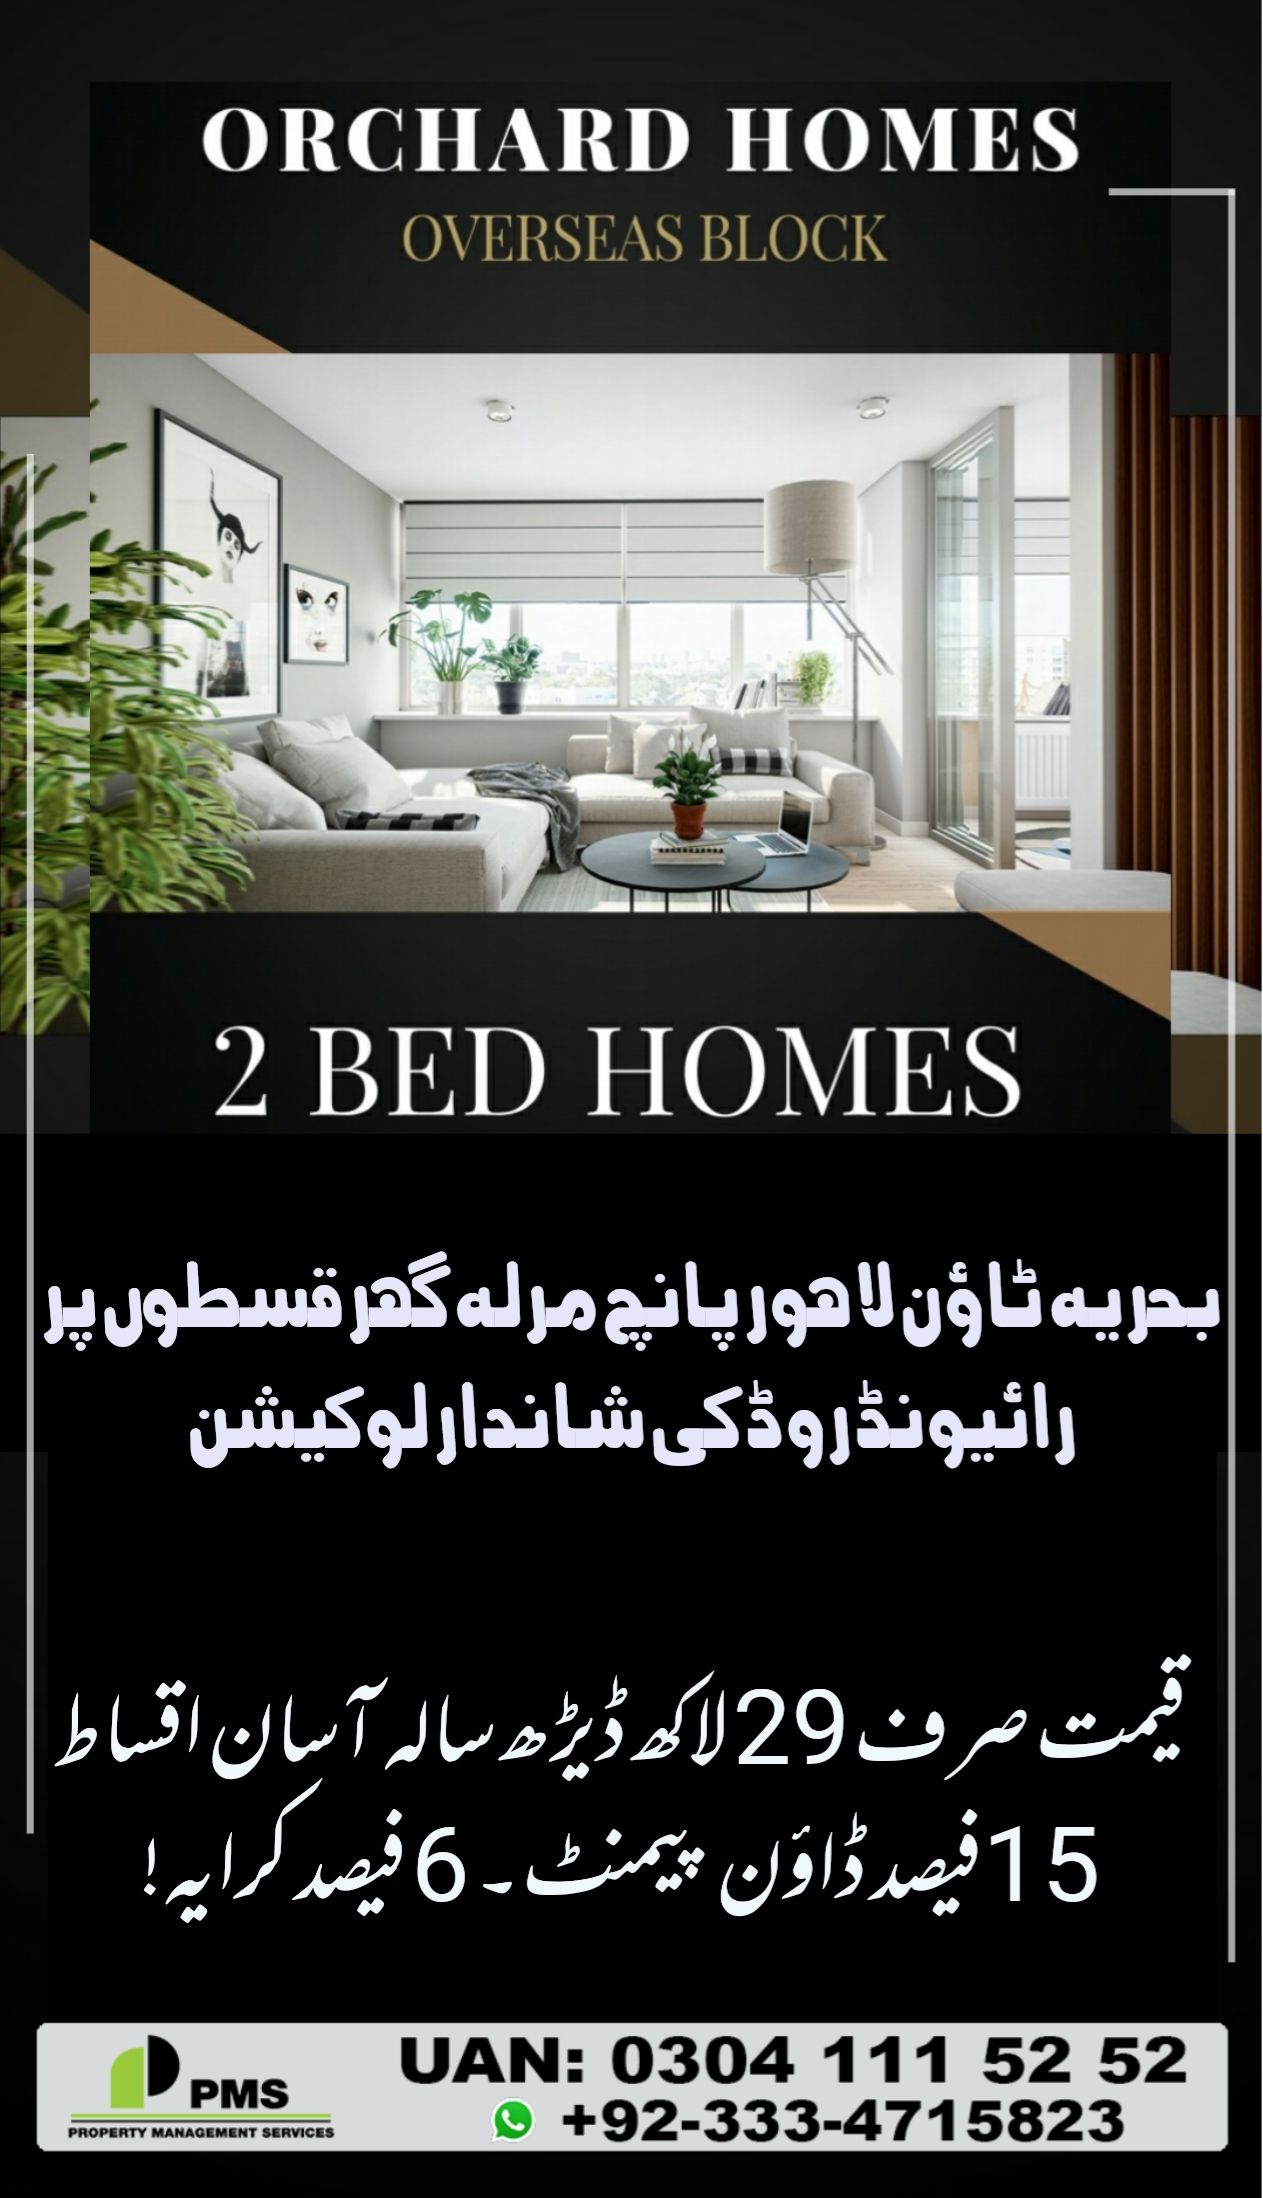 BAHRIA TOWN ORCHARD HOMES Location Bahria Orchard, Phase